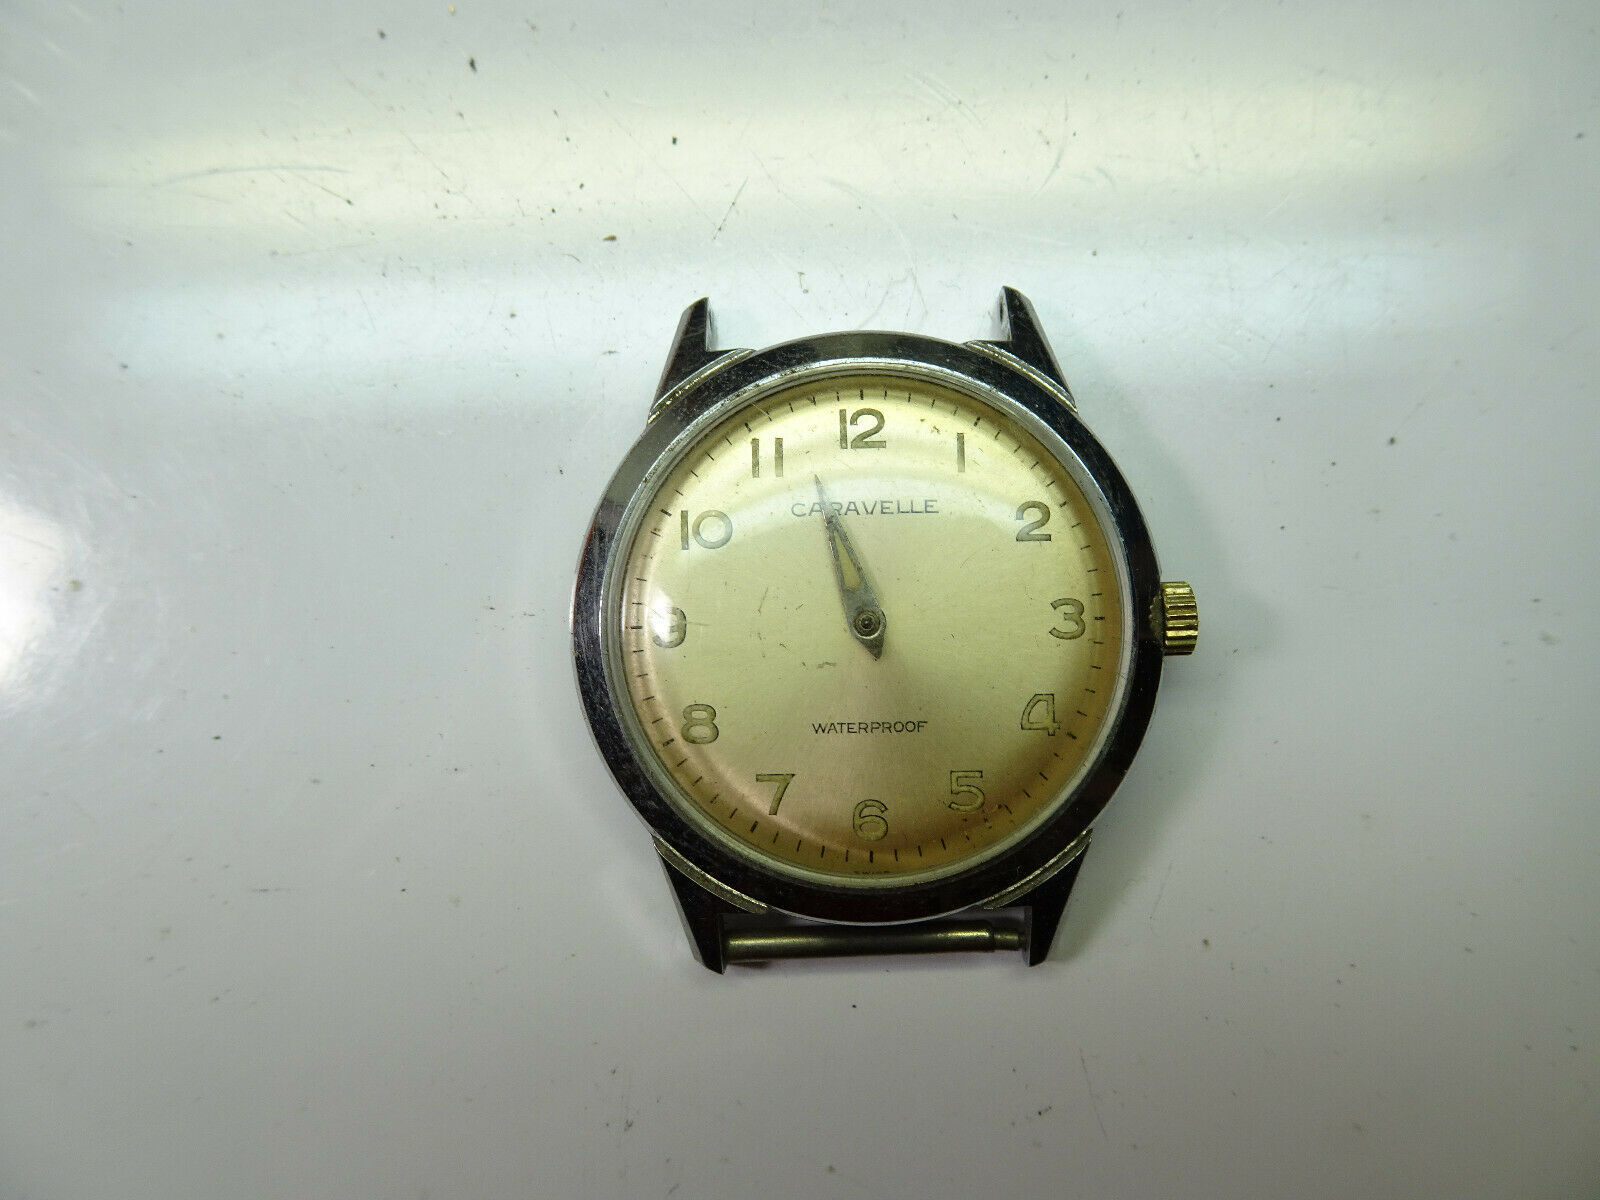 Primary image for 1964 Caravelle 17 jewel waterproof watch runs to restore missing hands